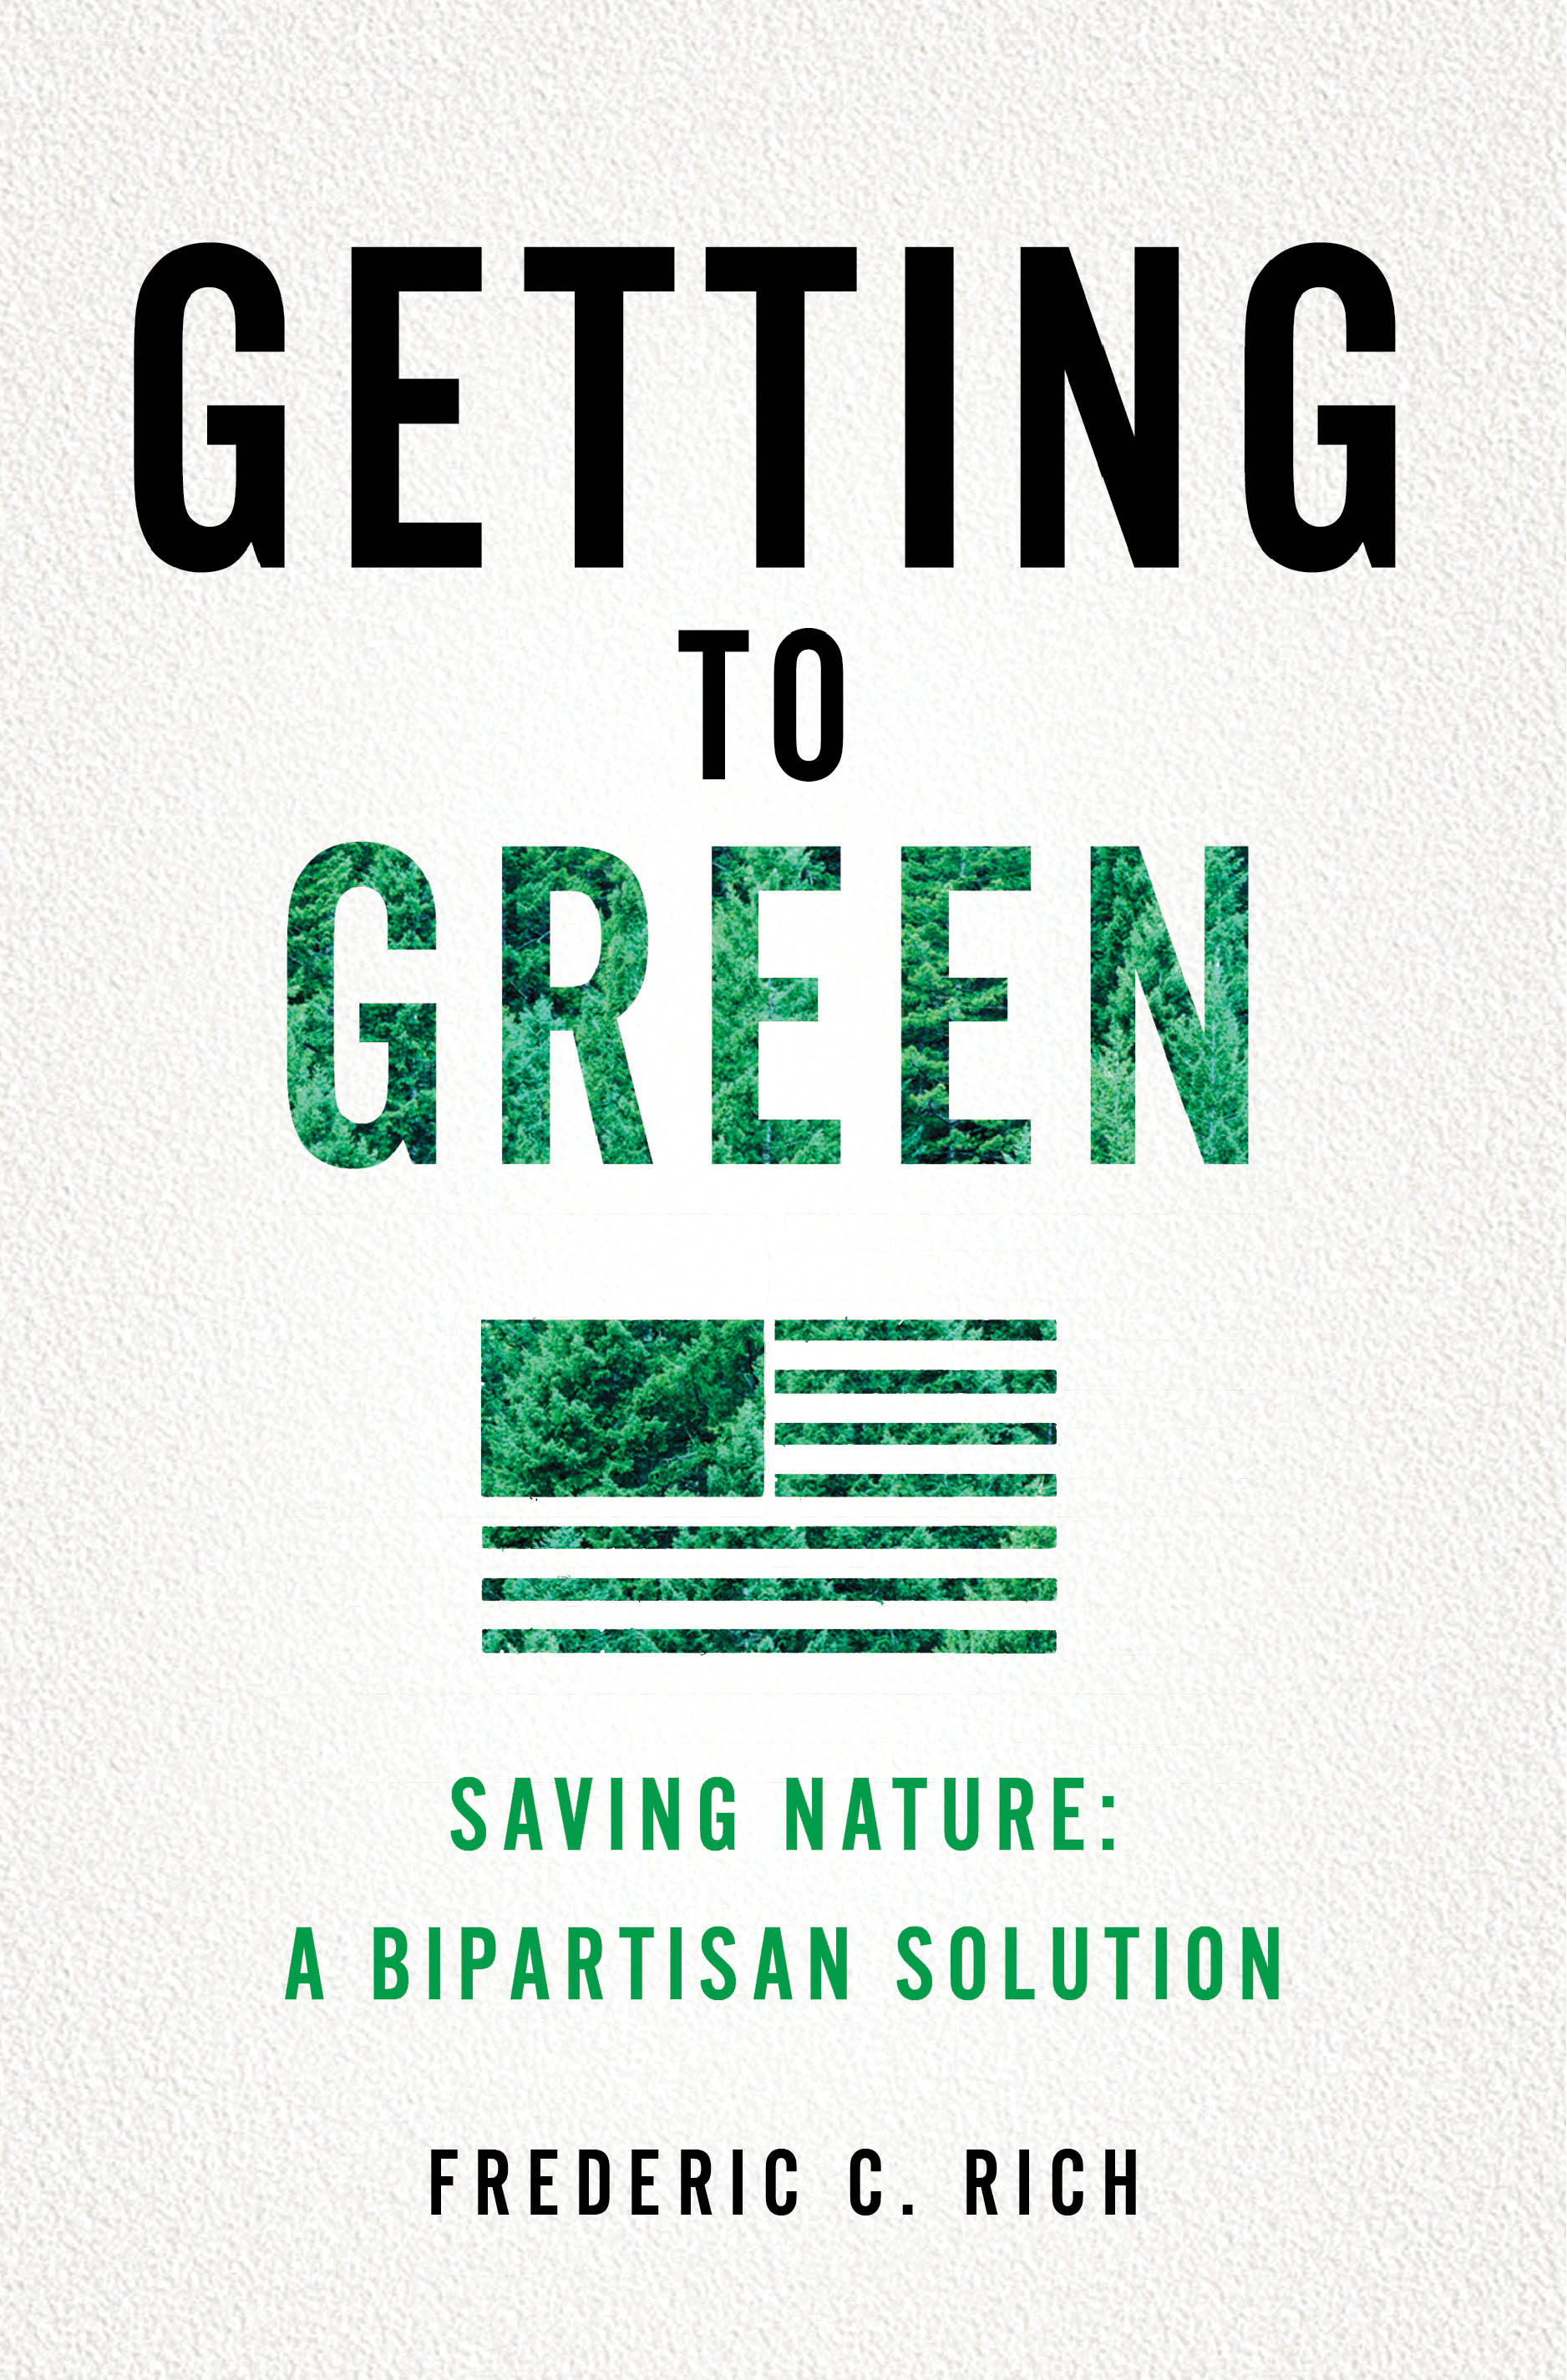 Getting to Green : Saving Nature: A Bipartisan Solution by Frederic C. Rich (forthcoming, W. W. Norton, 2016)